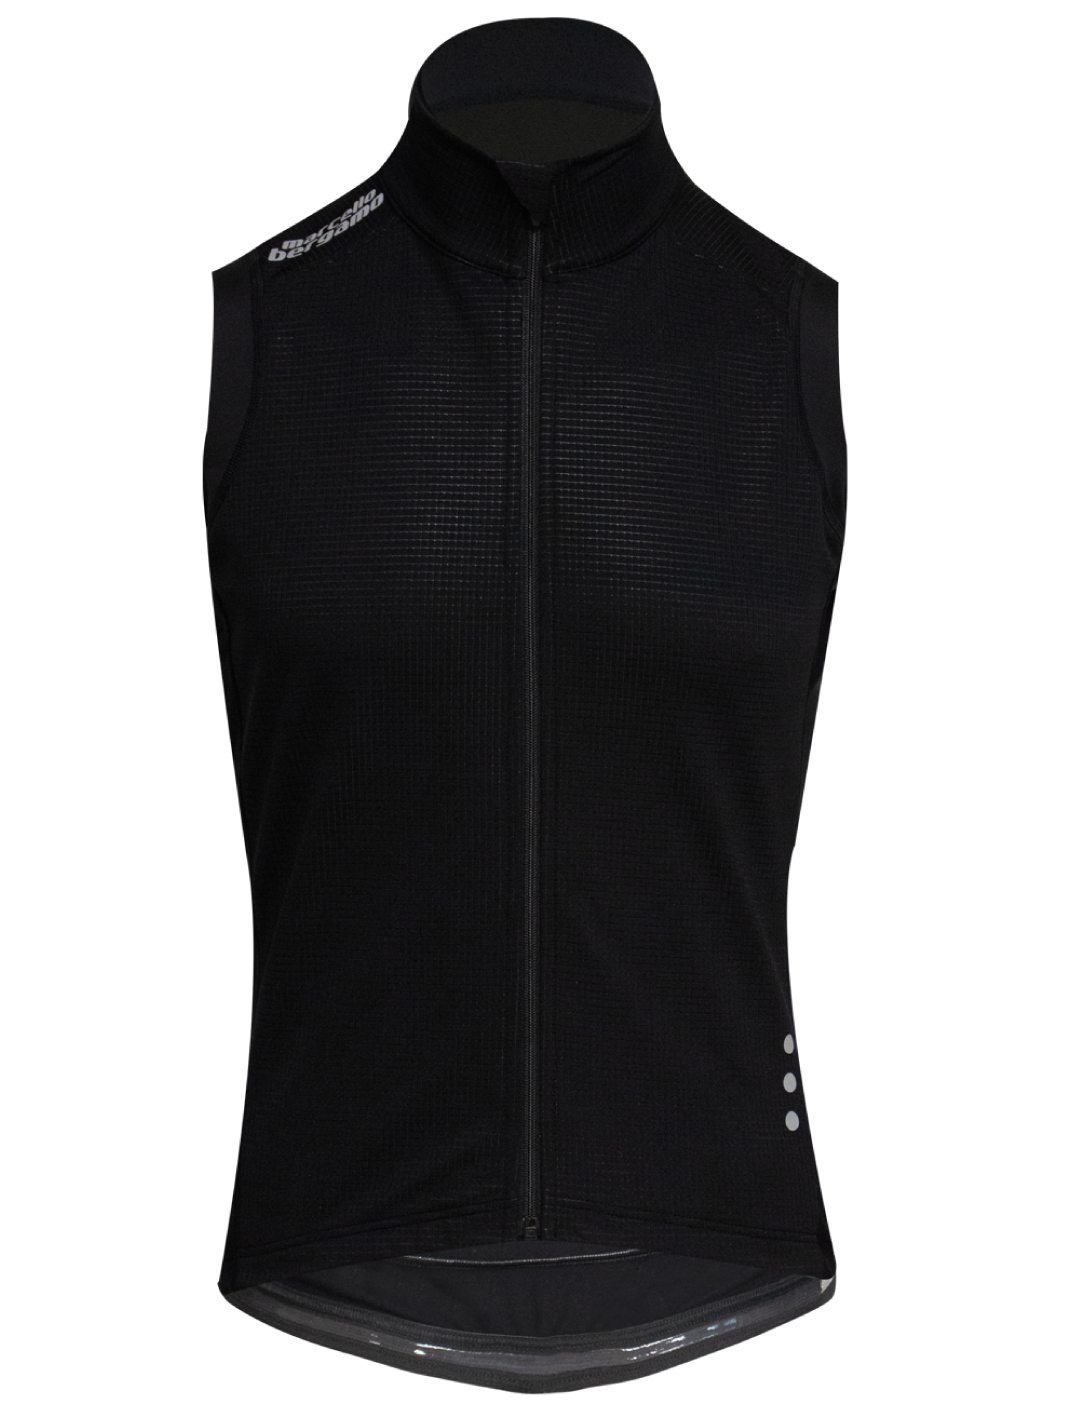 Bora Windproof Vest - Black